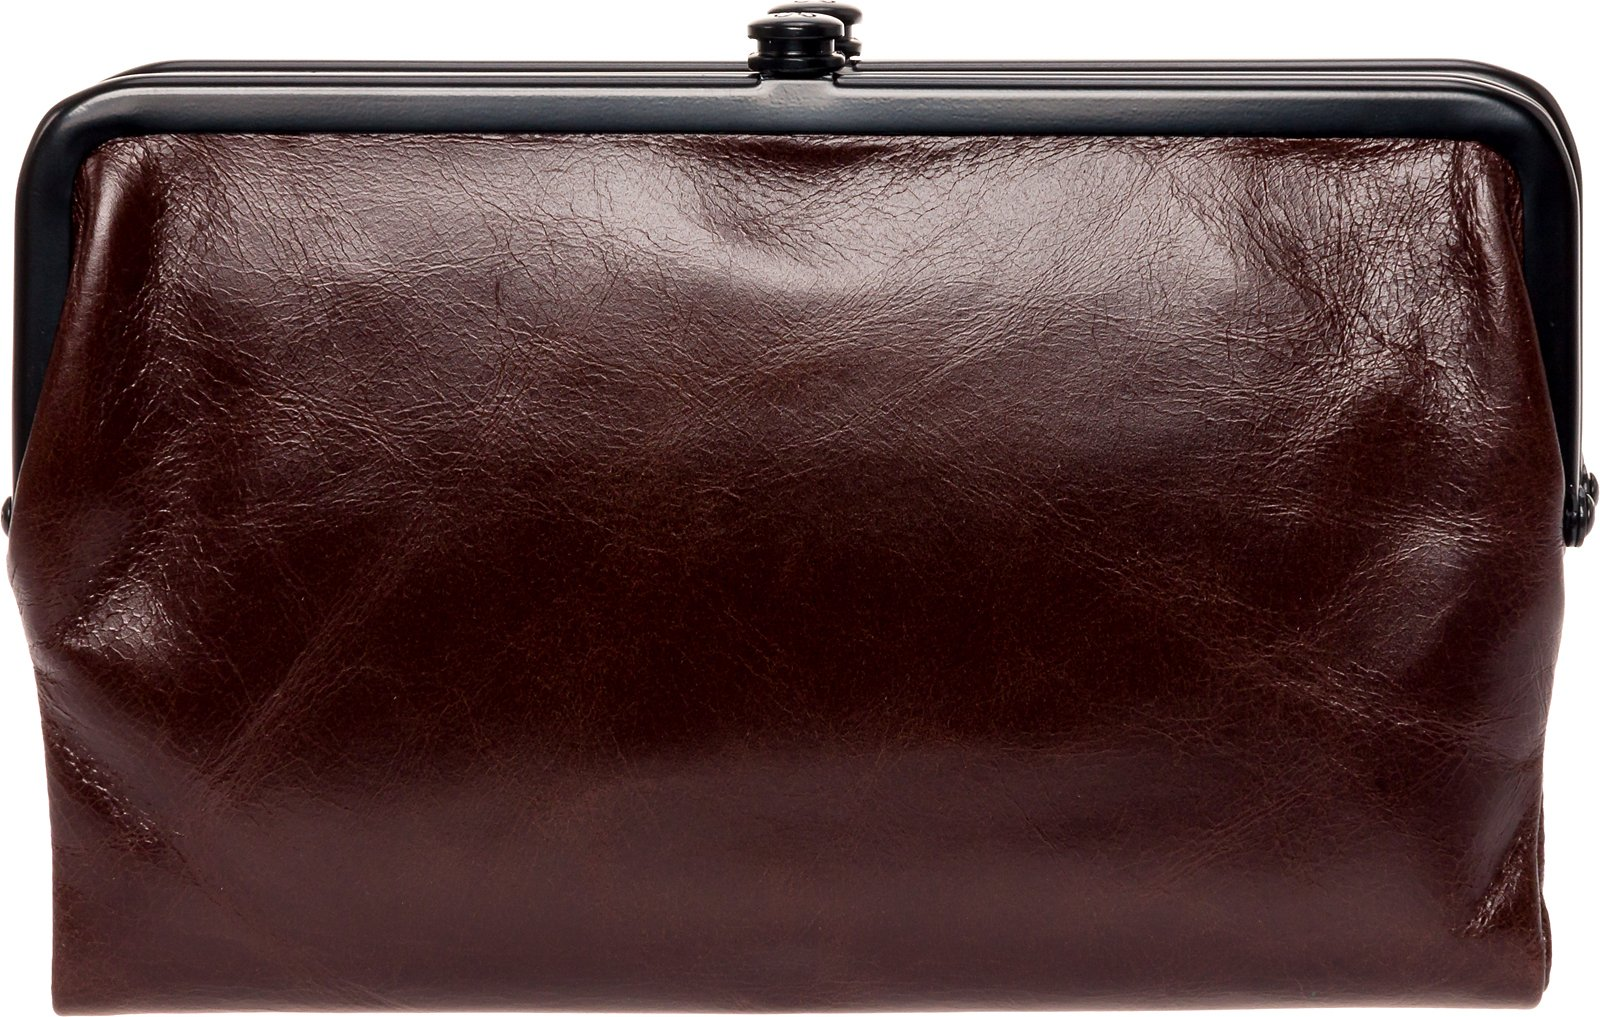 Hobo Womens Glory Vintage Leather Clutch Wallet (Espresso)